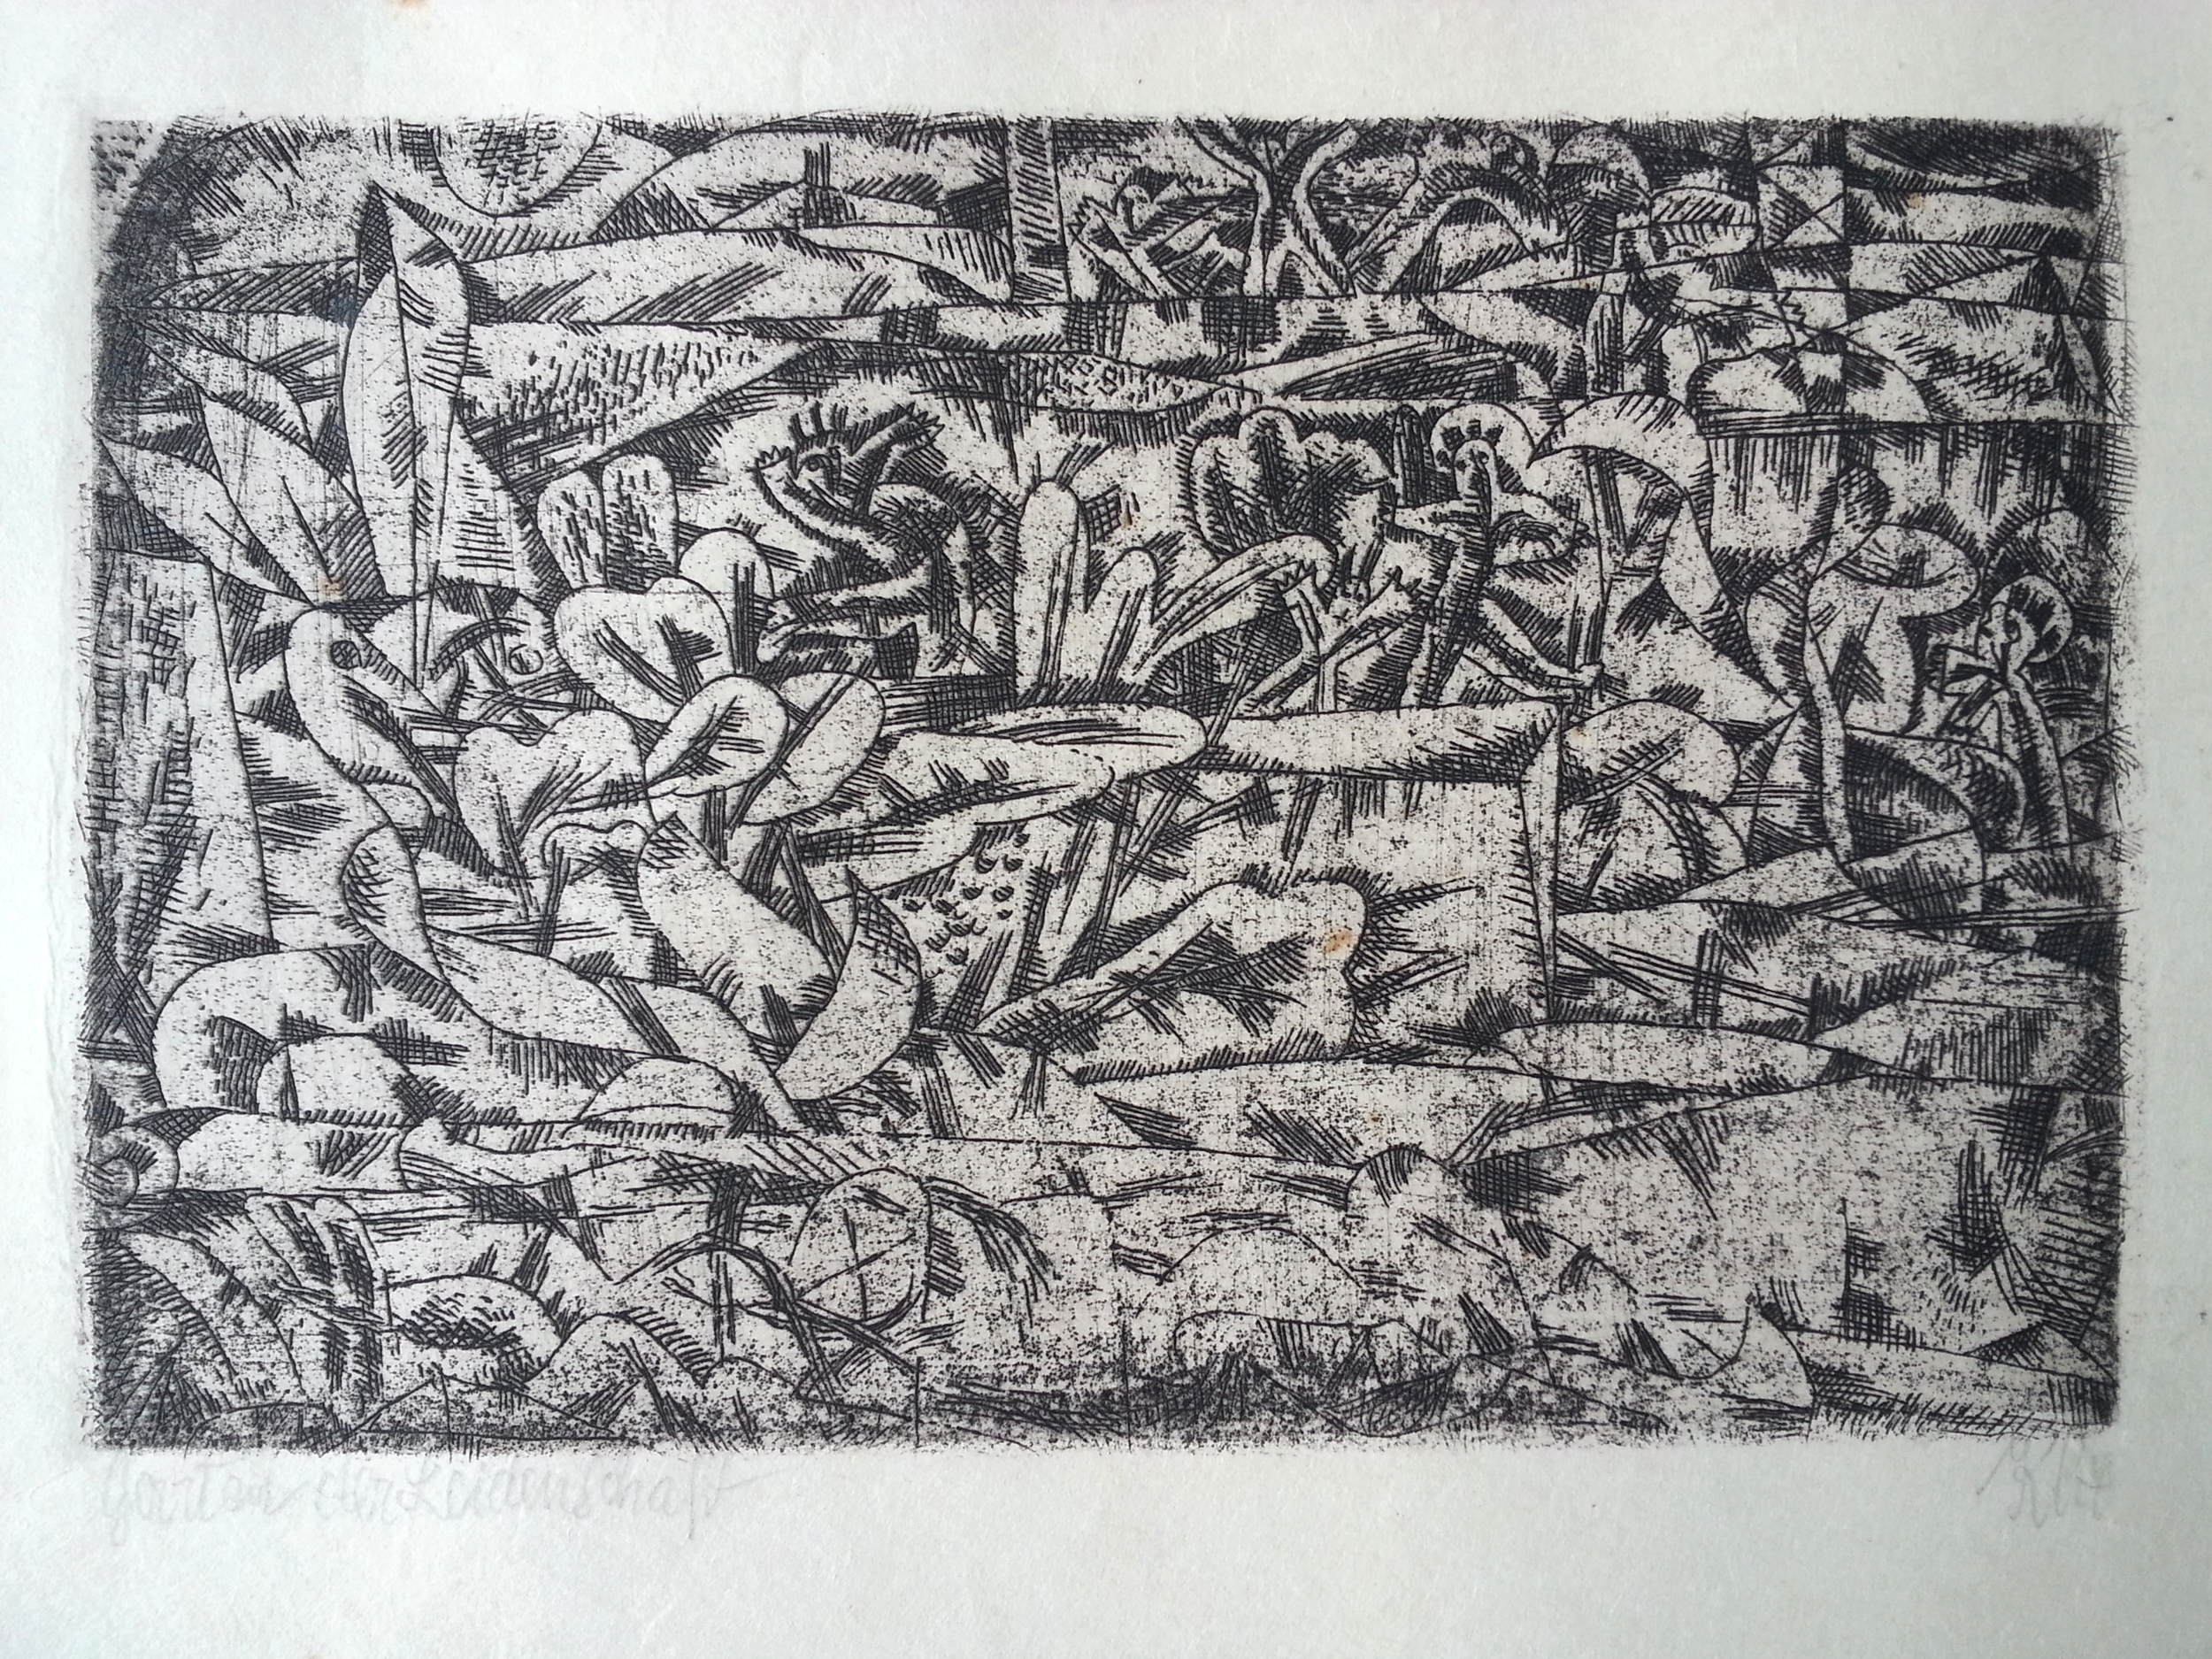 """Paul Klee ( Swiss - German, 1879 - 1940 )  """"Garten der Leidenschaft"""" / """"Garden of Pleasure"""" ( 1913 )  Original Hand Pulled Etching, Titled (l.l.) and Signed """"Klee"""" (l.r.)  Approx. Image Size 3 1/2"""" x 5 1/2"""" /Frame O.D. 12 7/16"""" x 14 7/8""""  $6,700  A Swiss-born painter and graphic artist, Paul Klee was born on December 18, 1879, in Munchenbuchsee, Switzerland, into a family of musicians. His personal, often gently humorous works are filled with allusions to dreams, music, and poetry, and are difficult to classify. Primitive art, surrealism, cubism, and children's art all seem blended into his small-scale, delicate paintings, watercolors, and drawings.  Klee grew up in a musical family and was himself a violinist. His childhood love of music was always to remain important in his life and work. From 1898 to 1901, Klee studied in Munich, first with Heinrich Knirr, then at the Kunstakademie under Franz von Stuck. Upon completing his schooling, he traveled to Italy in the first of a series of trips abroad that nourished his visual sensibilities. While in Italy (1901-02), he responded enthusiastically to Early Christian and Byzantine art. He settled in Bern in 1902.  Klee's early works are mostly etchings and pen-and-ink drawings. These combine satirical, grotesque, and surreal elements, and some reveal the influence of Francisco de Goya and James Ensor, both of whom Klee admired. Two of his best-known etchings, dating from 1903, are 'Virgin in a Tree' and 'Two Men Meet, Each Believing the Other to Be of Higher Rank'. Such peculiar, evocative titles are characteristic of Klee, and give his works an added dimension of meaning.  After his marriage in 1906 to the pianist Lili Stumpf, Klee settled in Munich, then an important center for avant-garde art. That same year he exhibited his etchings for the first time. His friendship with the painters Wassily Kandinsky and August Macke prompted him to join Der Blaue Reiter (The Blue Rider), an expressionist group that contributed muc"""